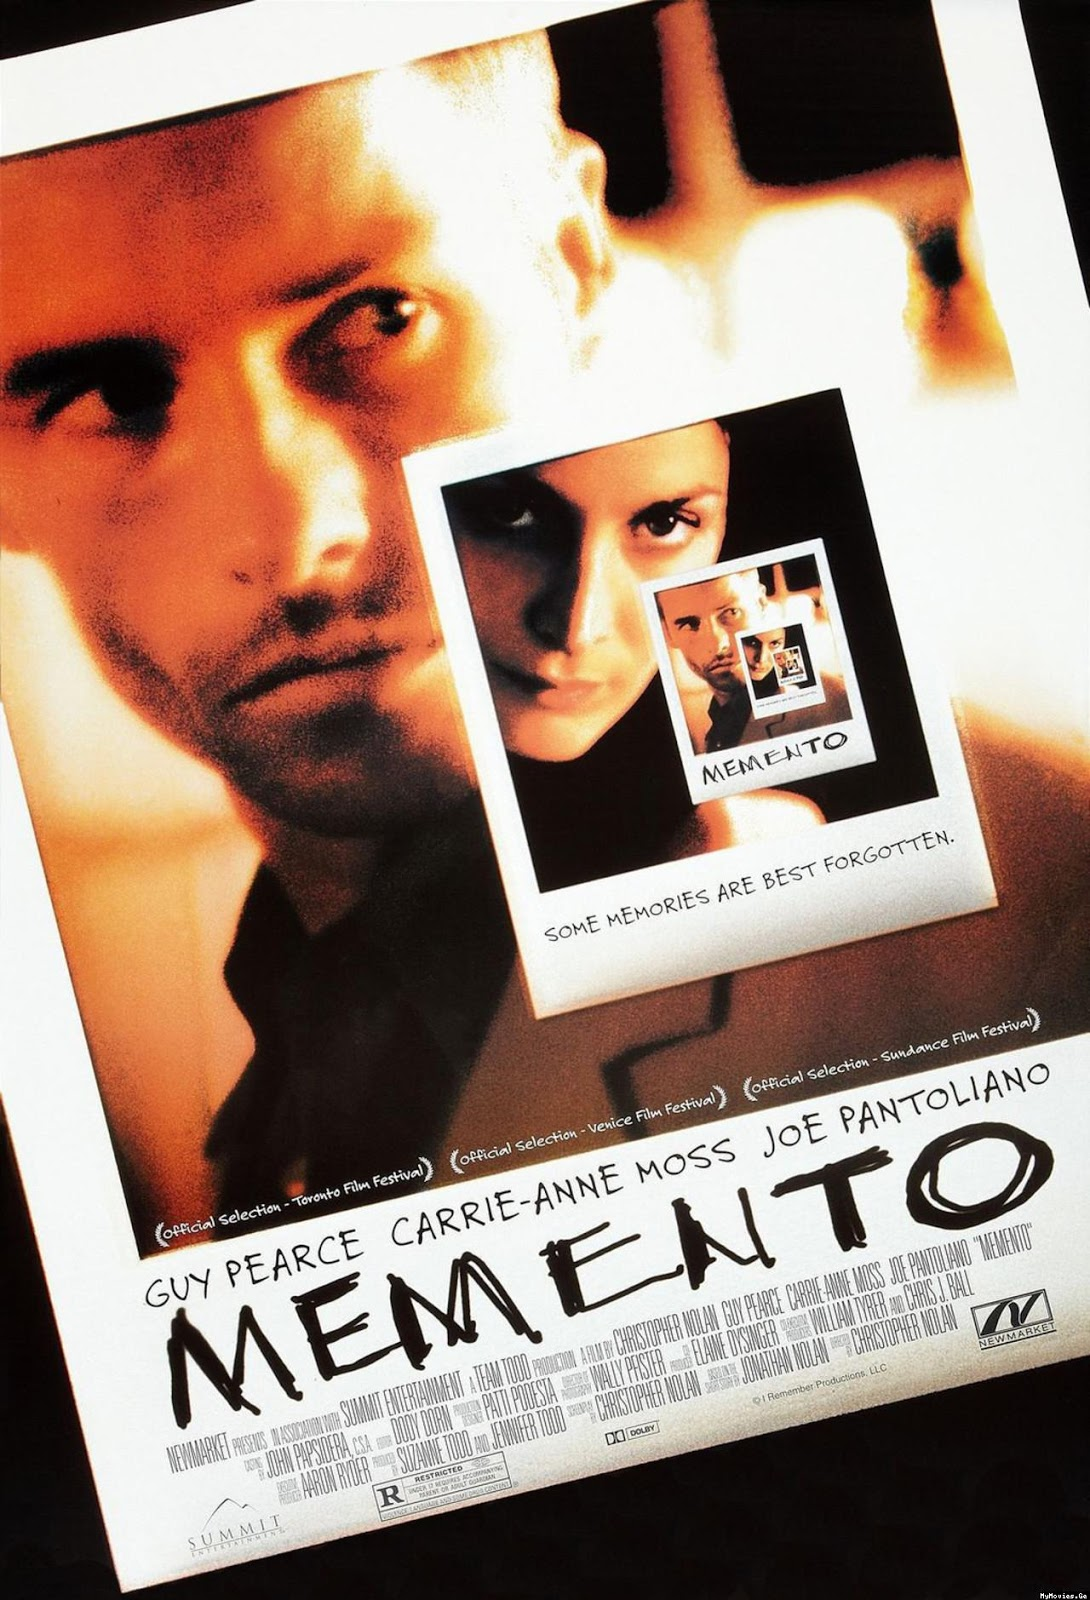 The theatrical release poster for Memento. It depicts Guy Pearce and Carrie-Anne Moss in a series of photographs that become increasingly smaller using an infinity mirror effect.